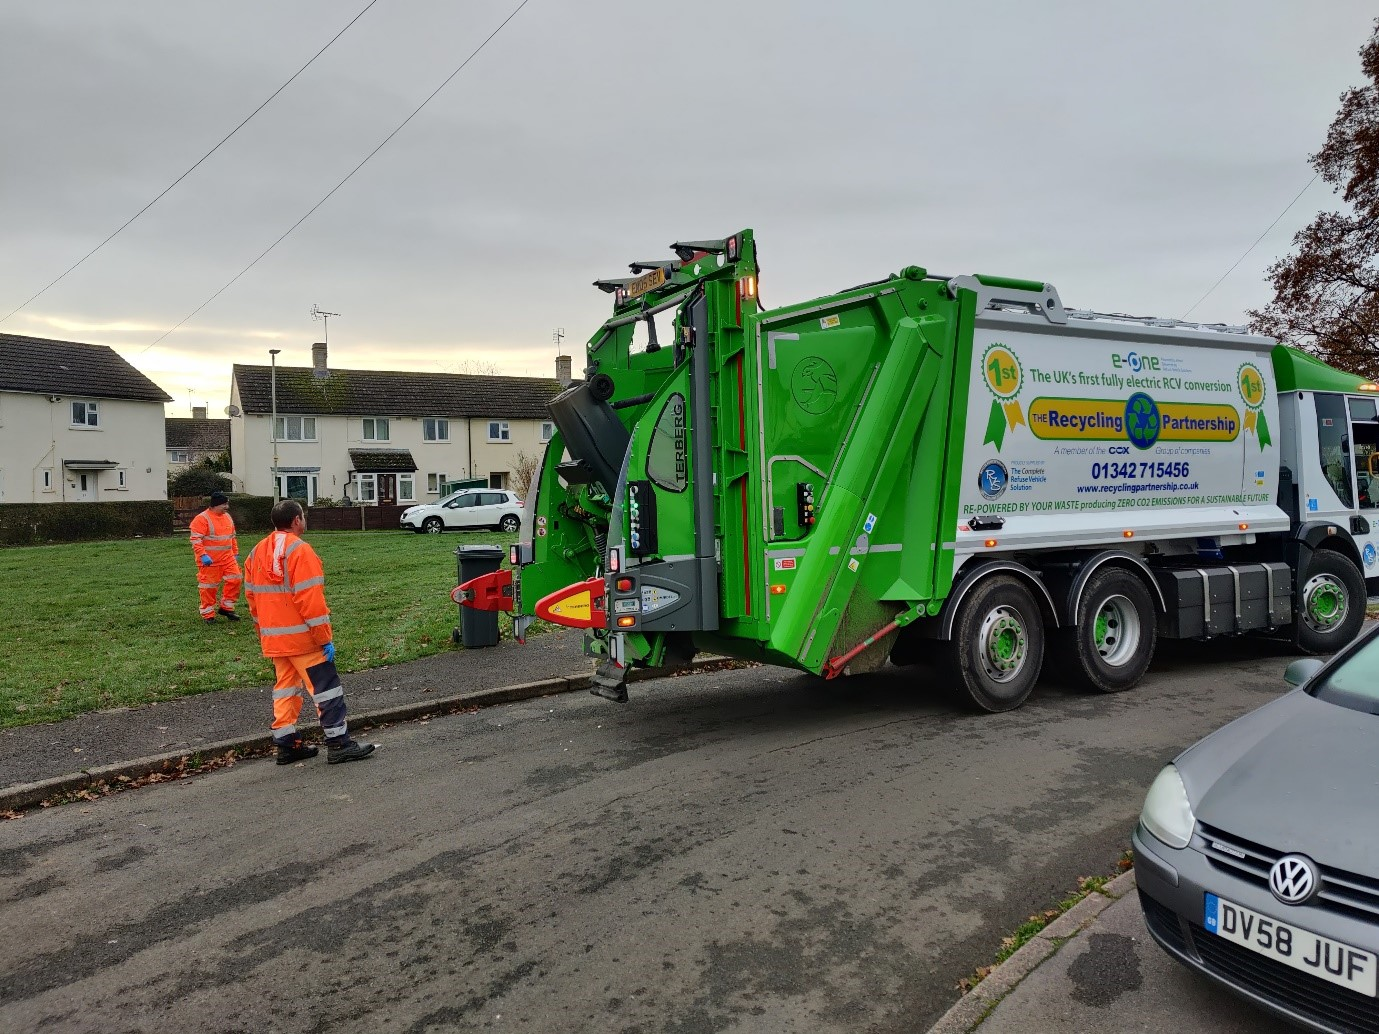 Electric refuse vehicles to help Stroud District become carbon neutral